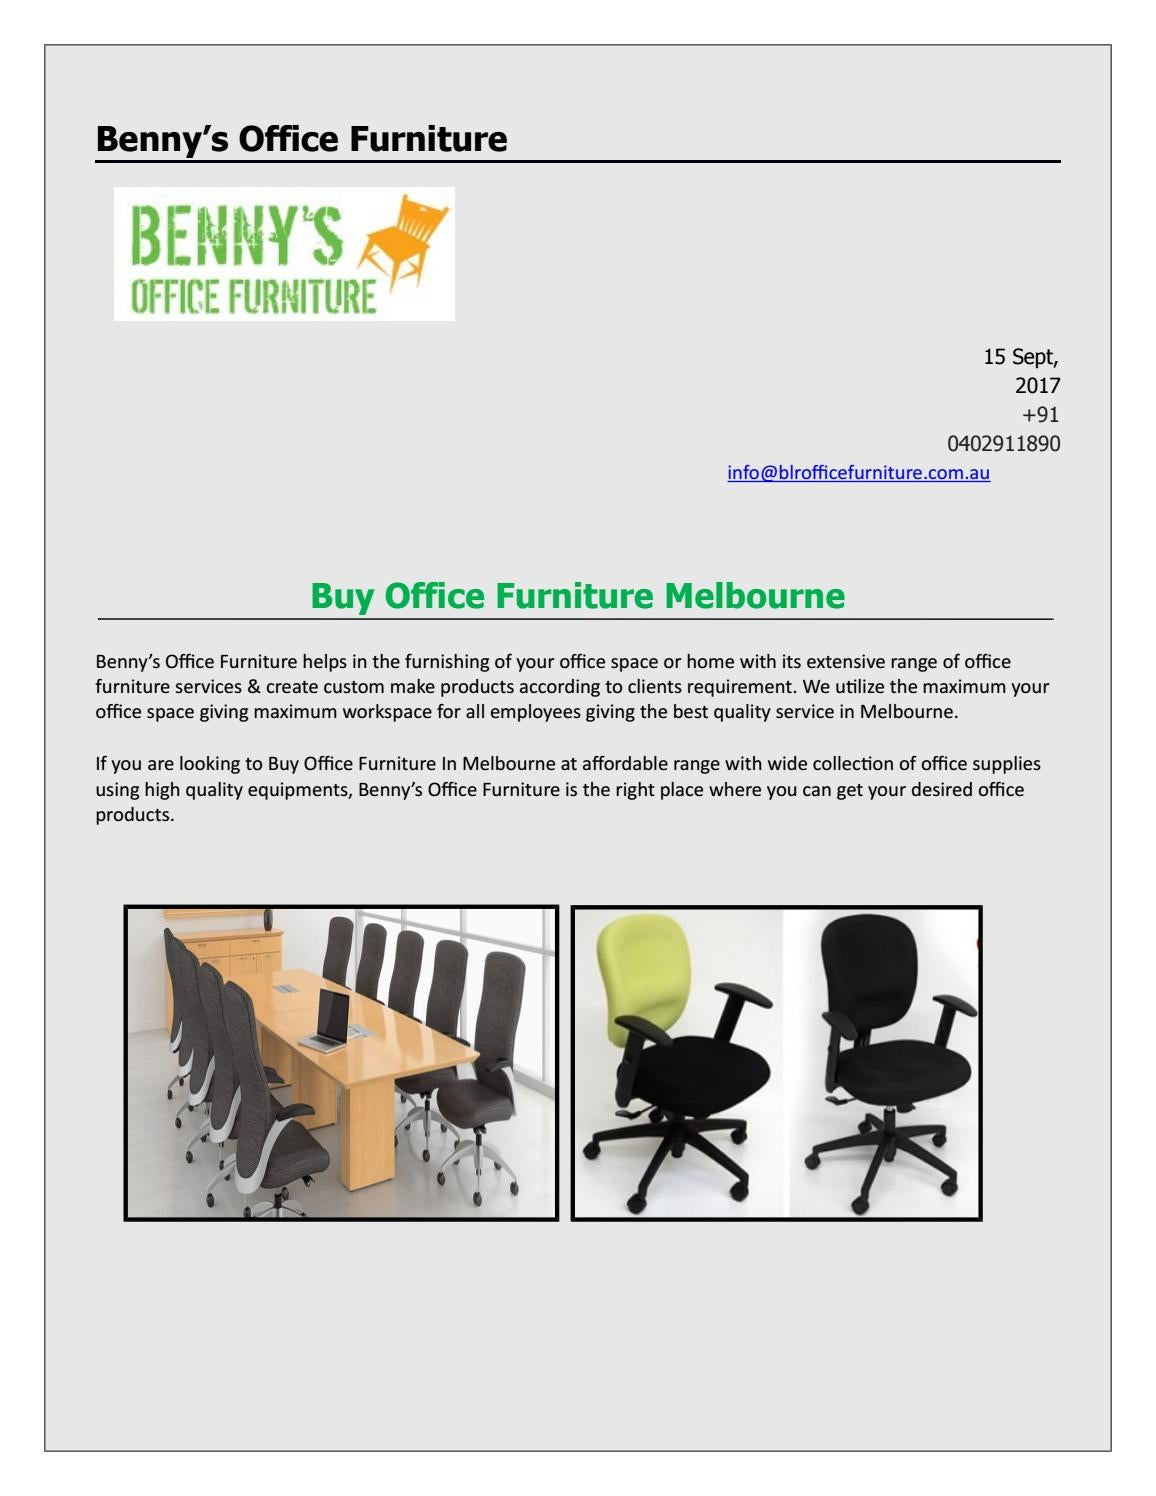 Used Office Furniture Melbourne Buy Cheapest Office Furniture Melbourne